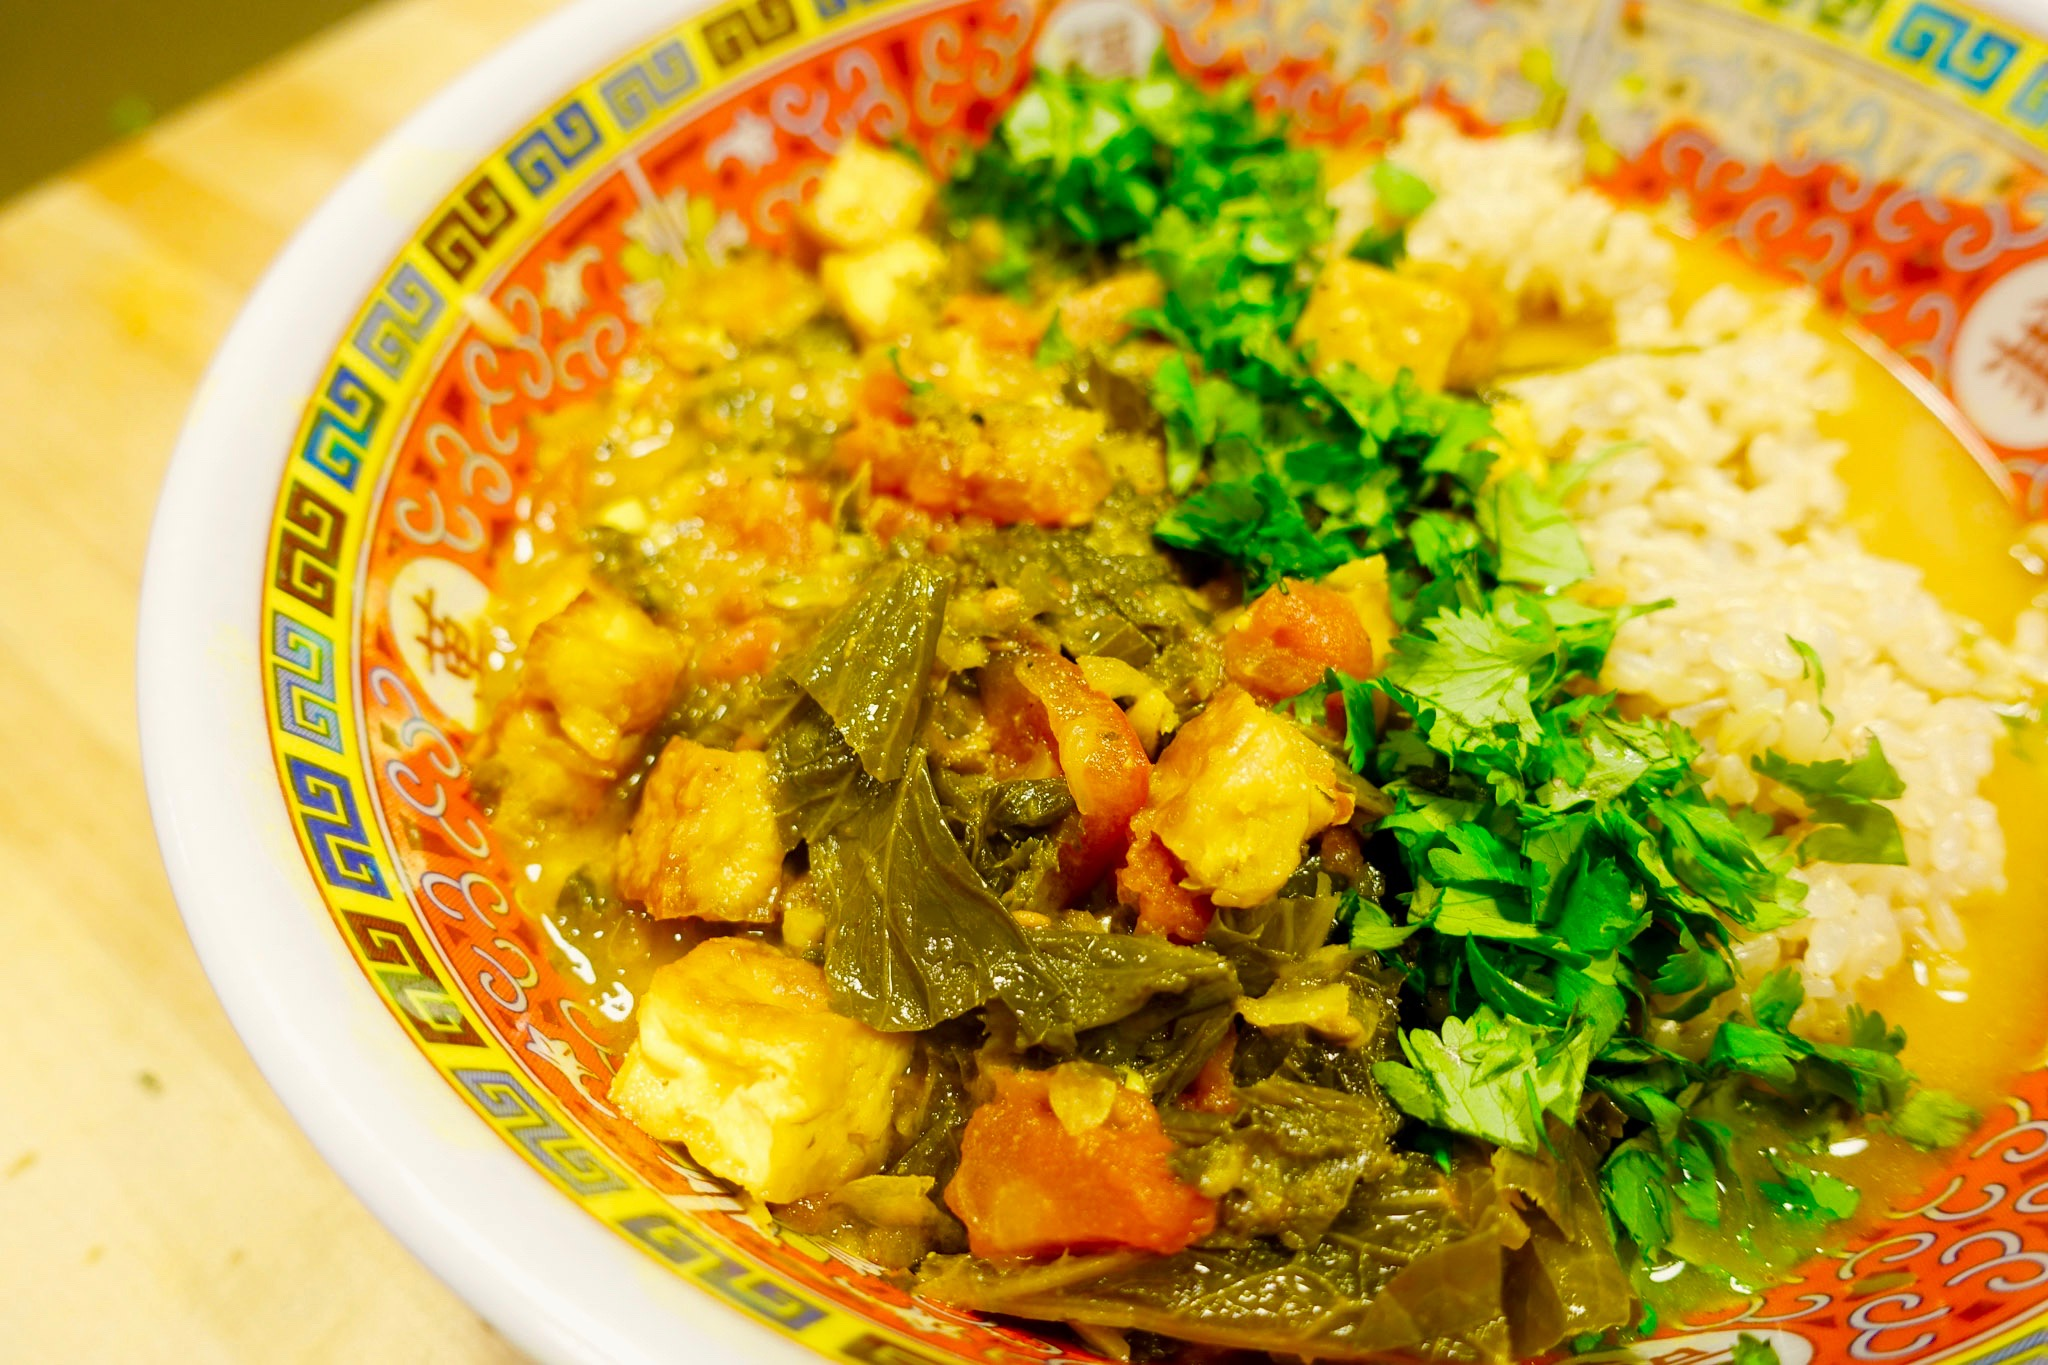 bryant terry tofu curry mustard greens